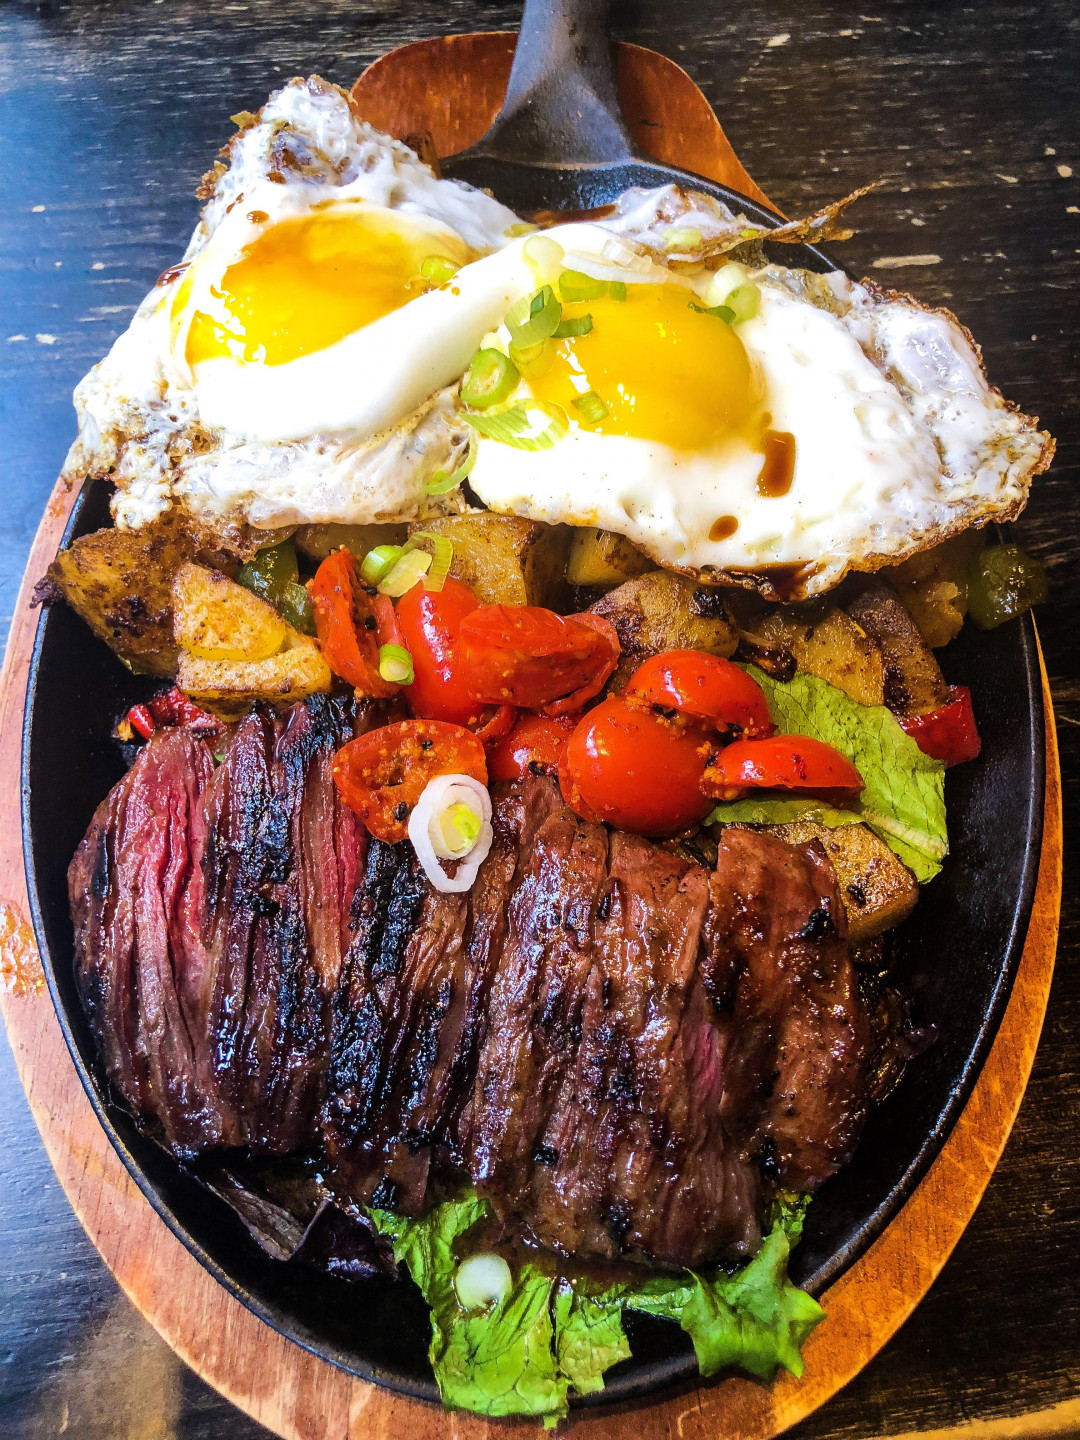 This Is The Steak Eggs Platter With Vietnamese Buttered Skirt Steak With 2 Sunny Side Eggs